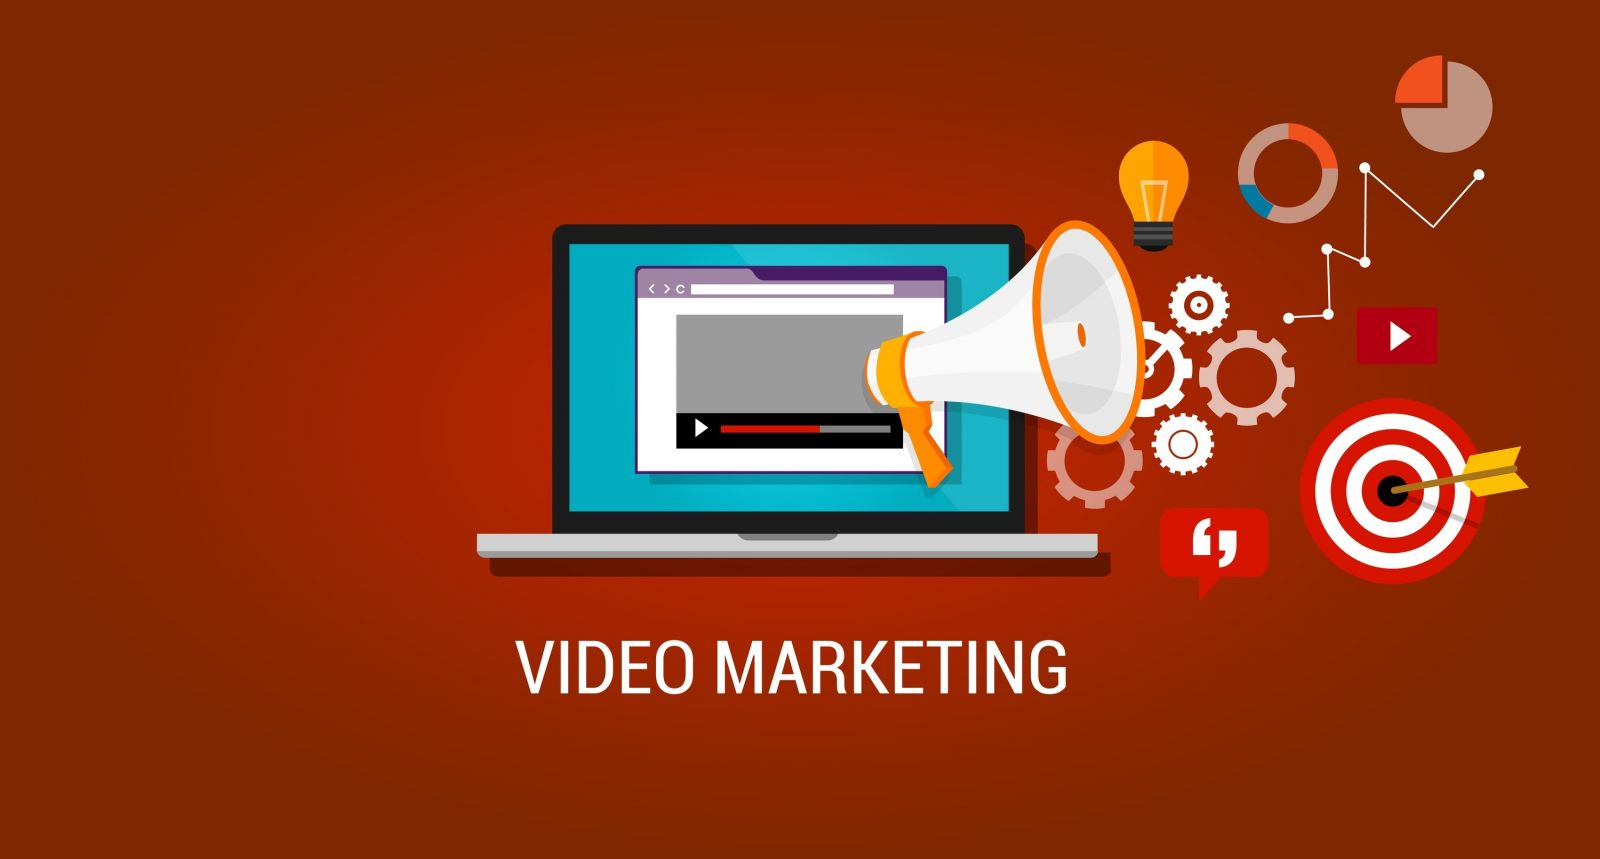 10 lý do sản xuất video marketing